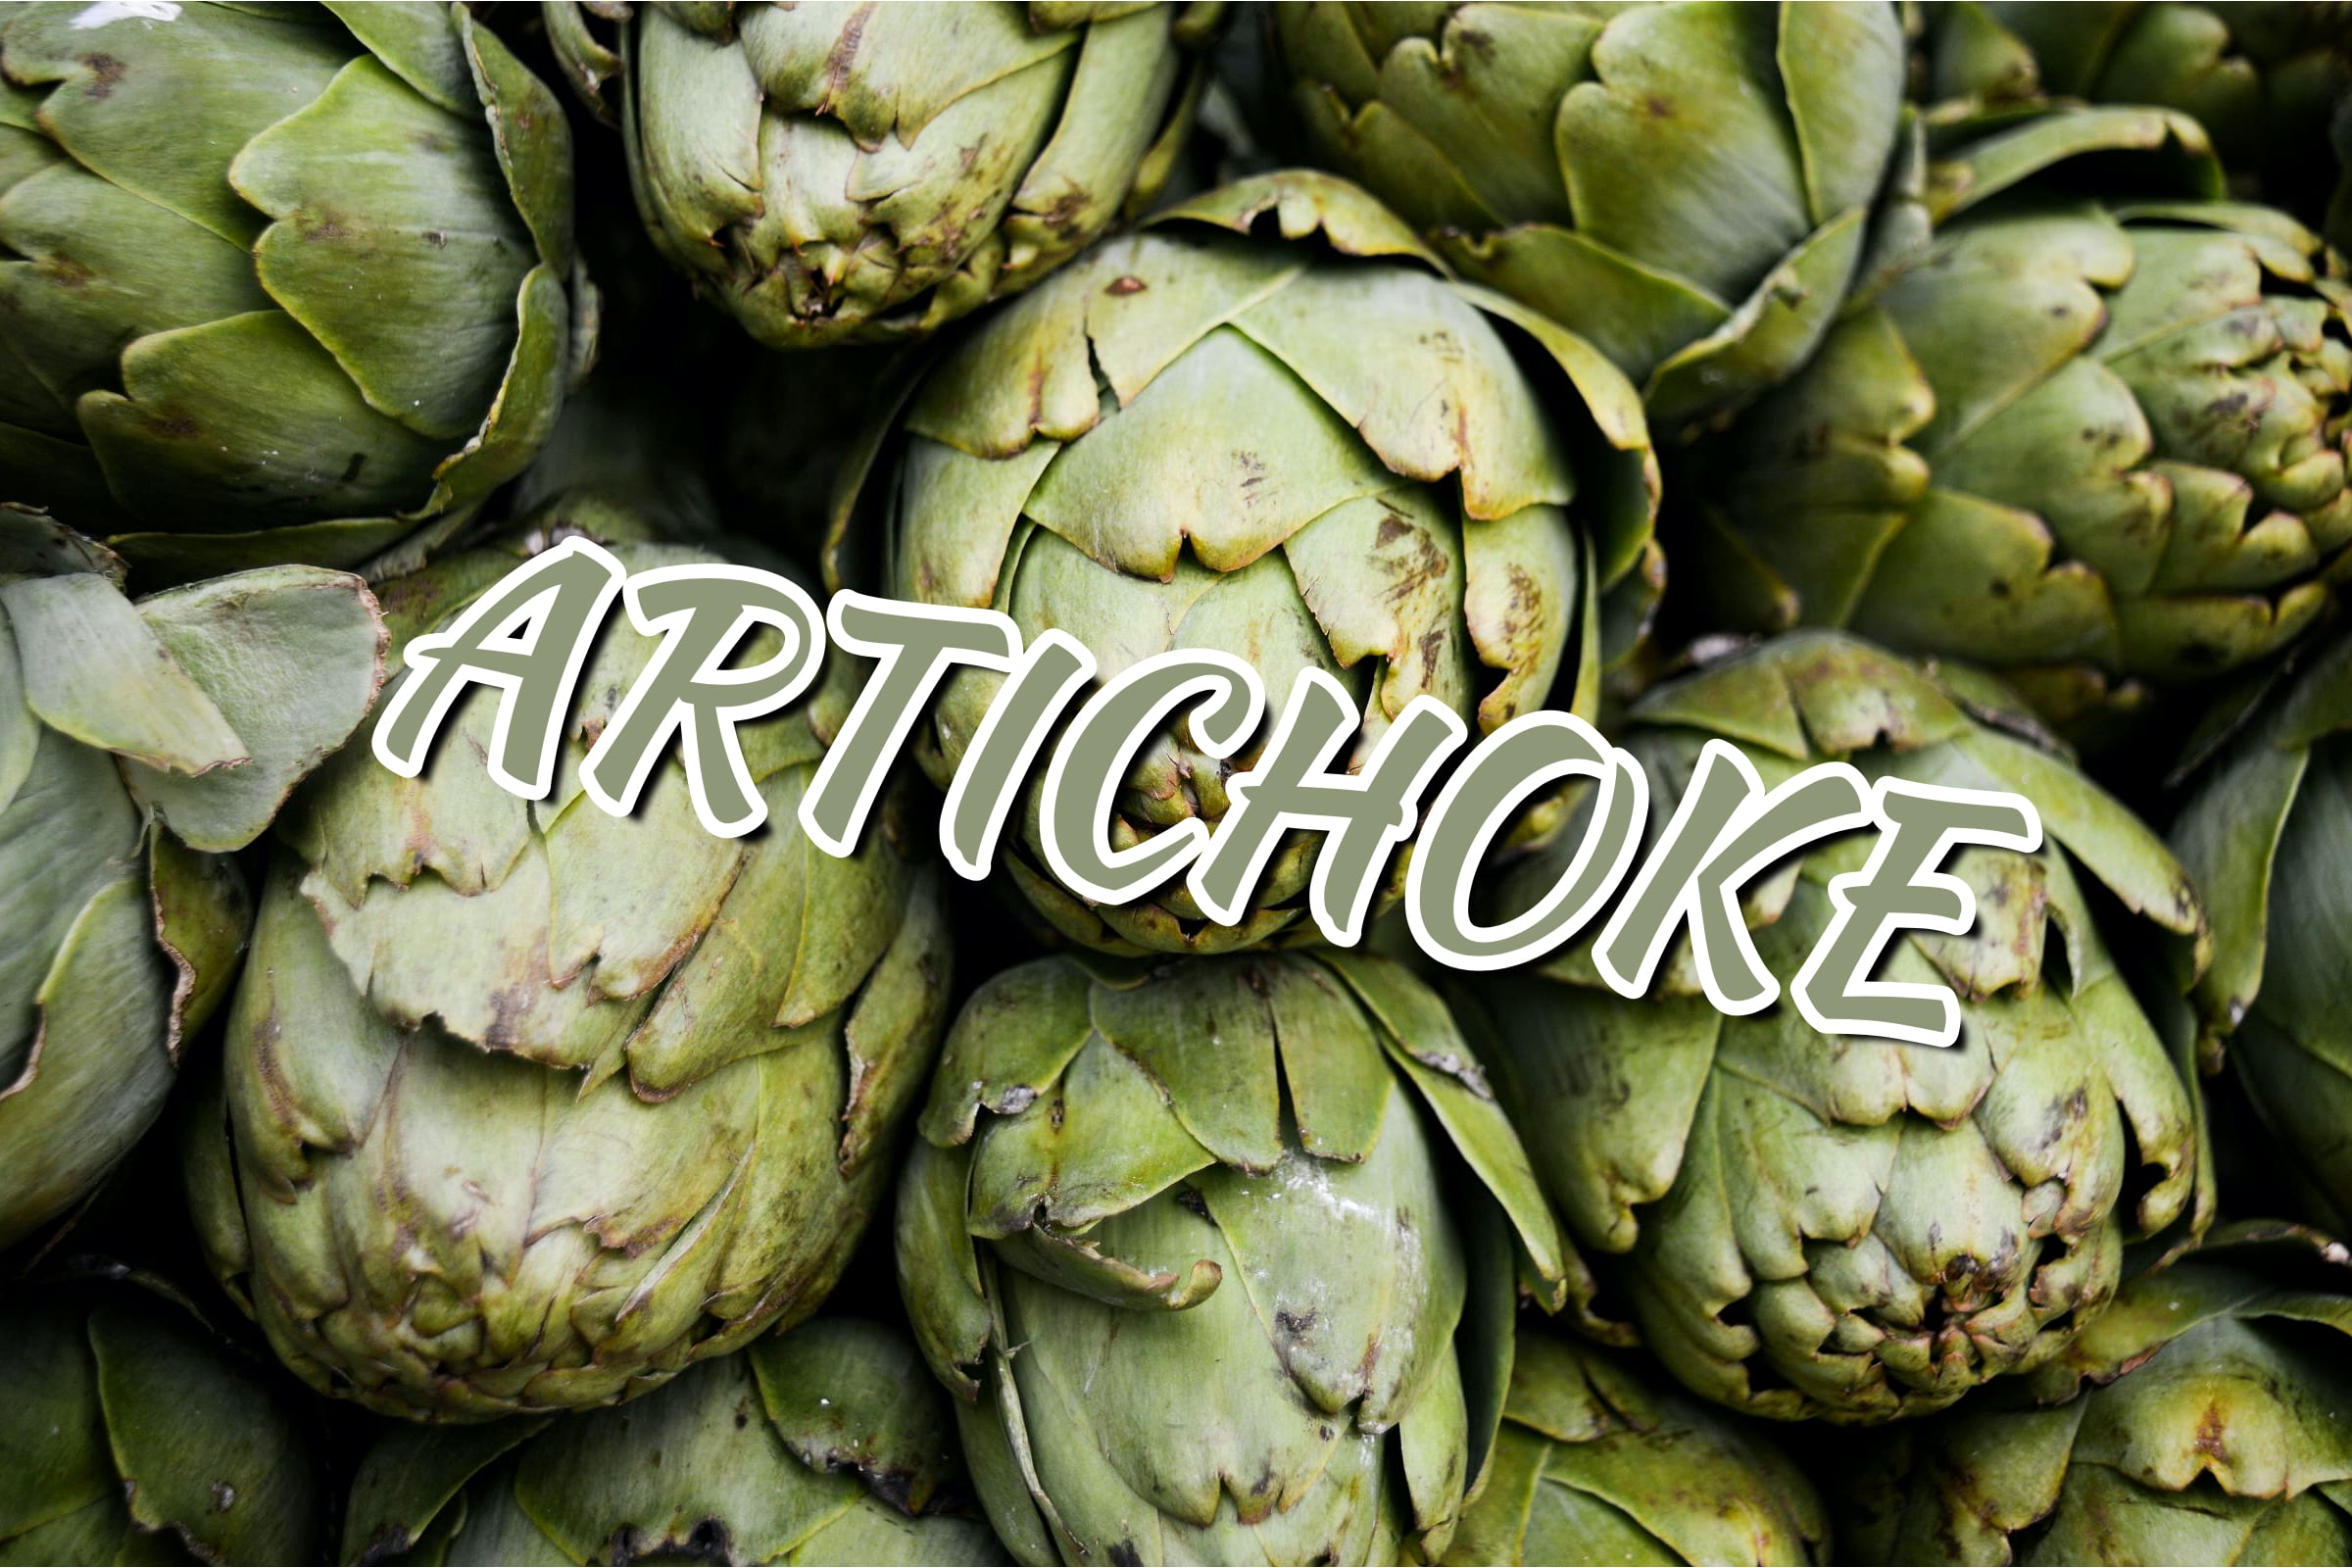 What Is The Artichoke Plant?